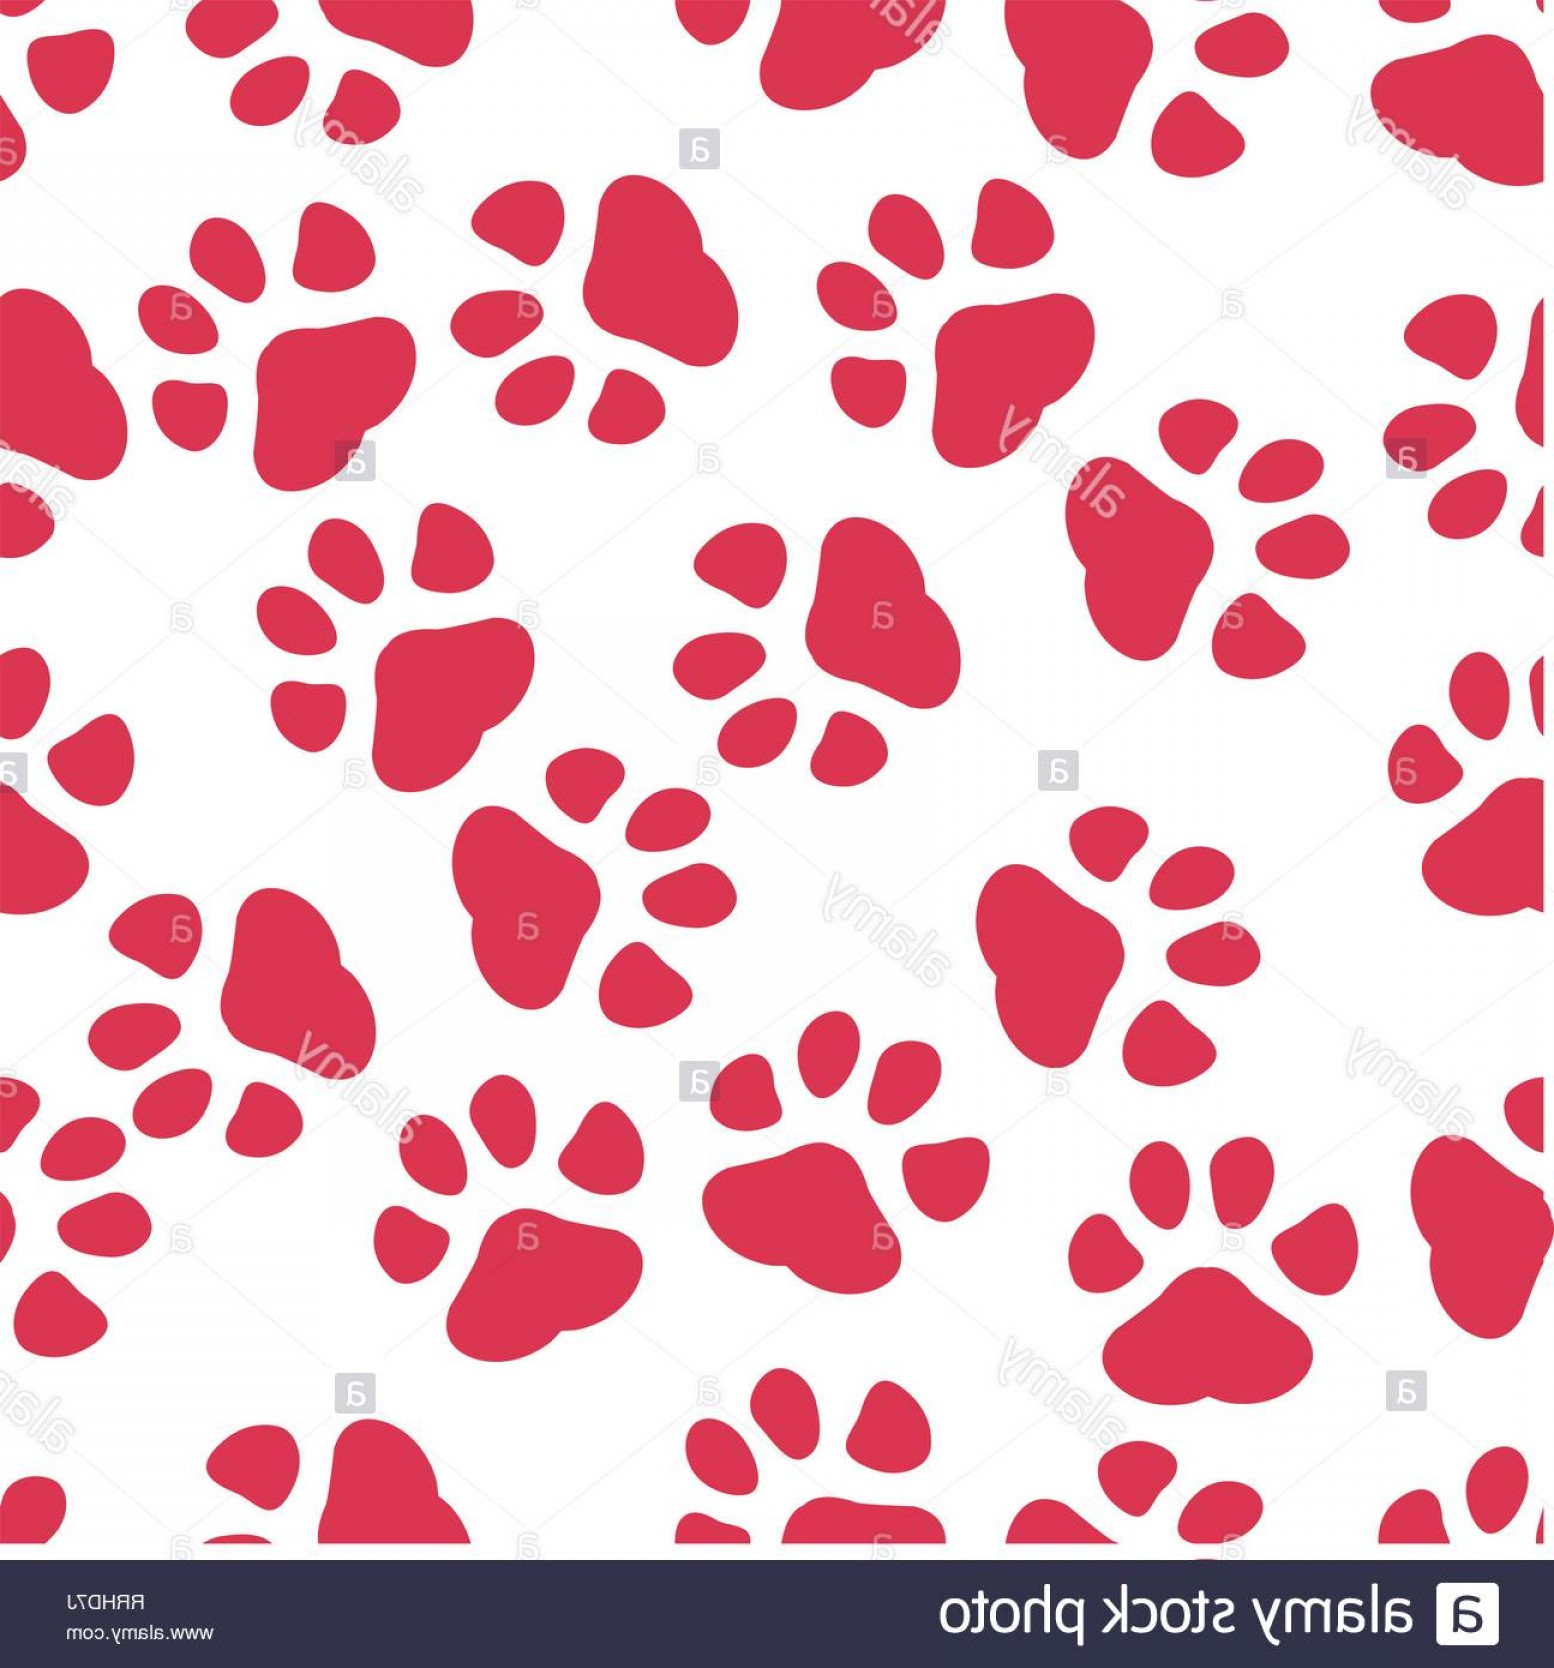 Footprint Vector EPS: Colorful Hand Drawn Watercolor Illustration With Animal Footprints Red Paw Eps Image